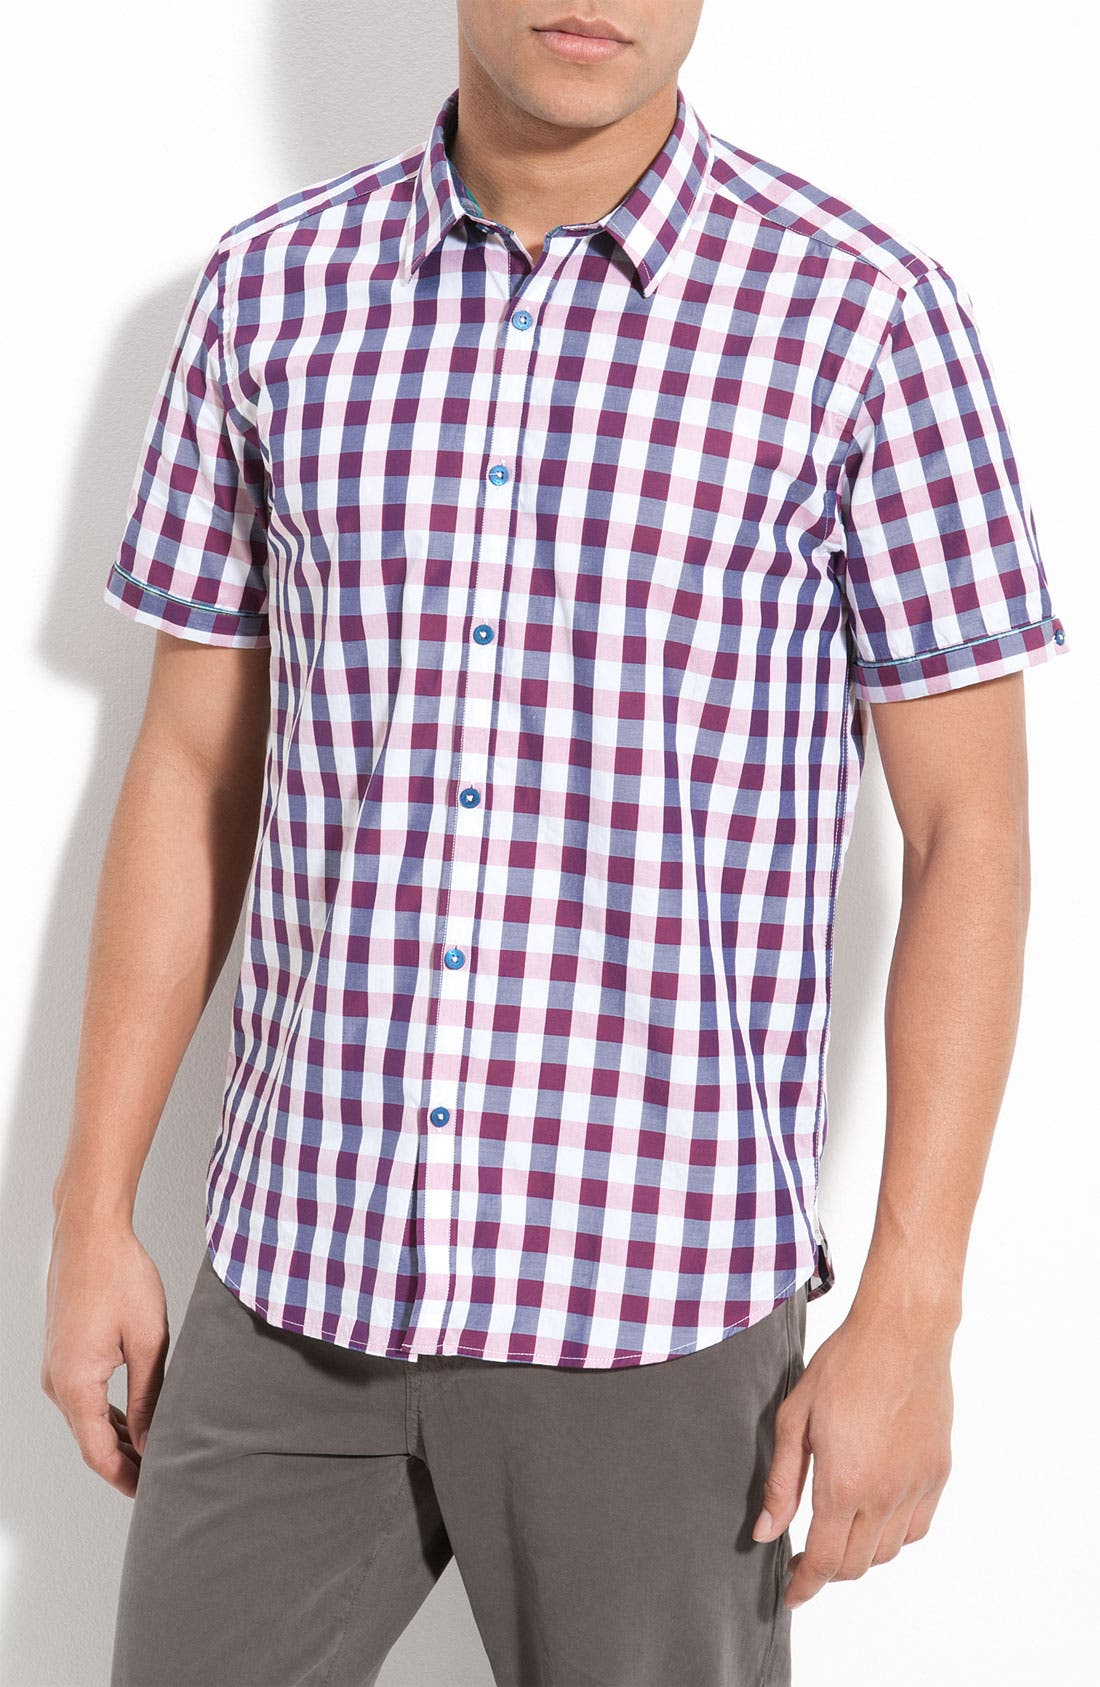 Main Image - Ted Baker London Check Plaid Woven Shirt